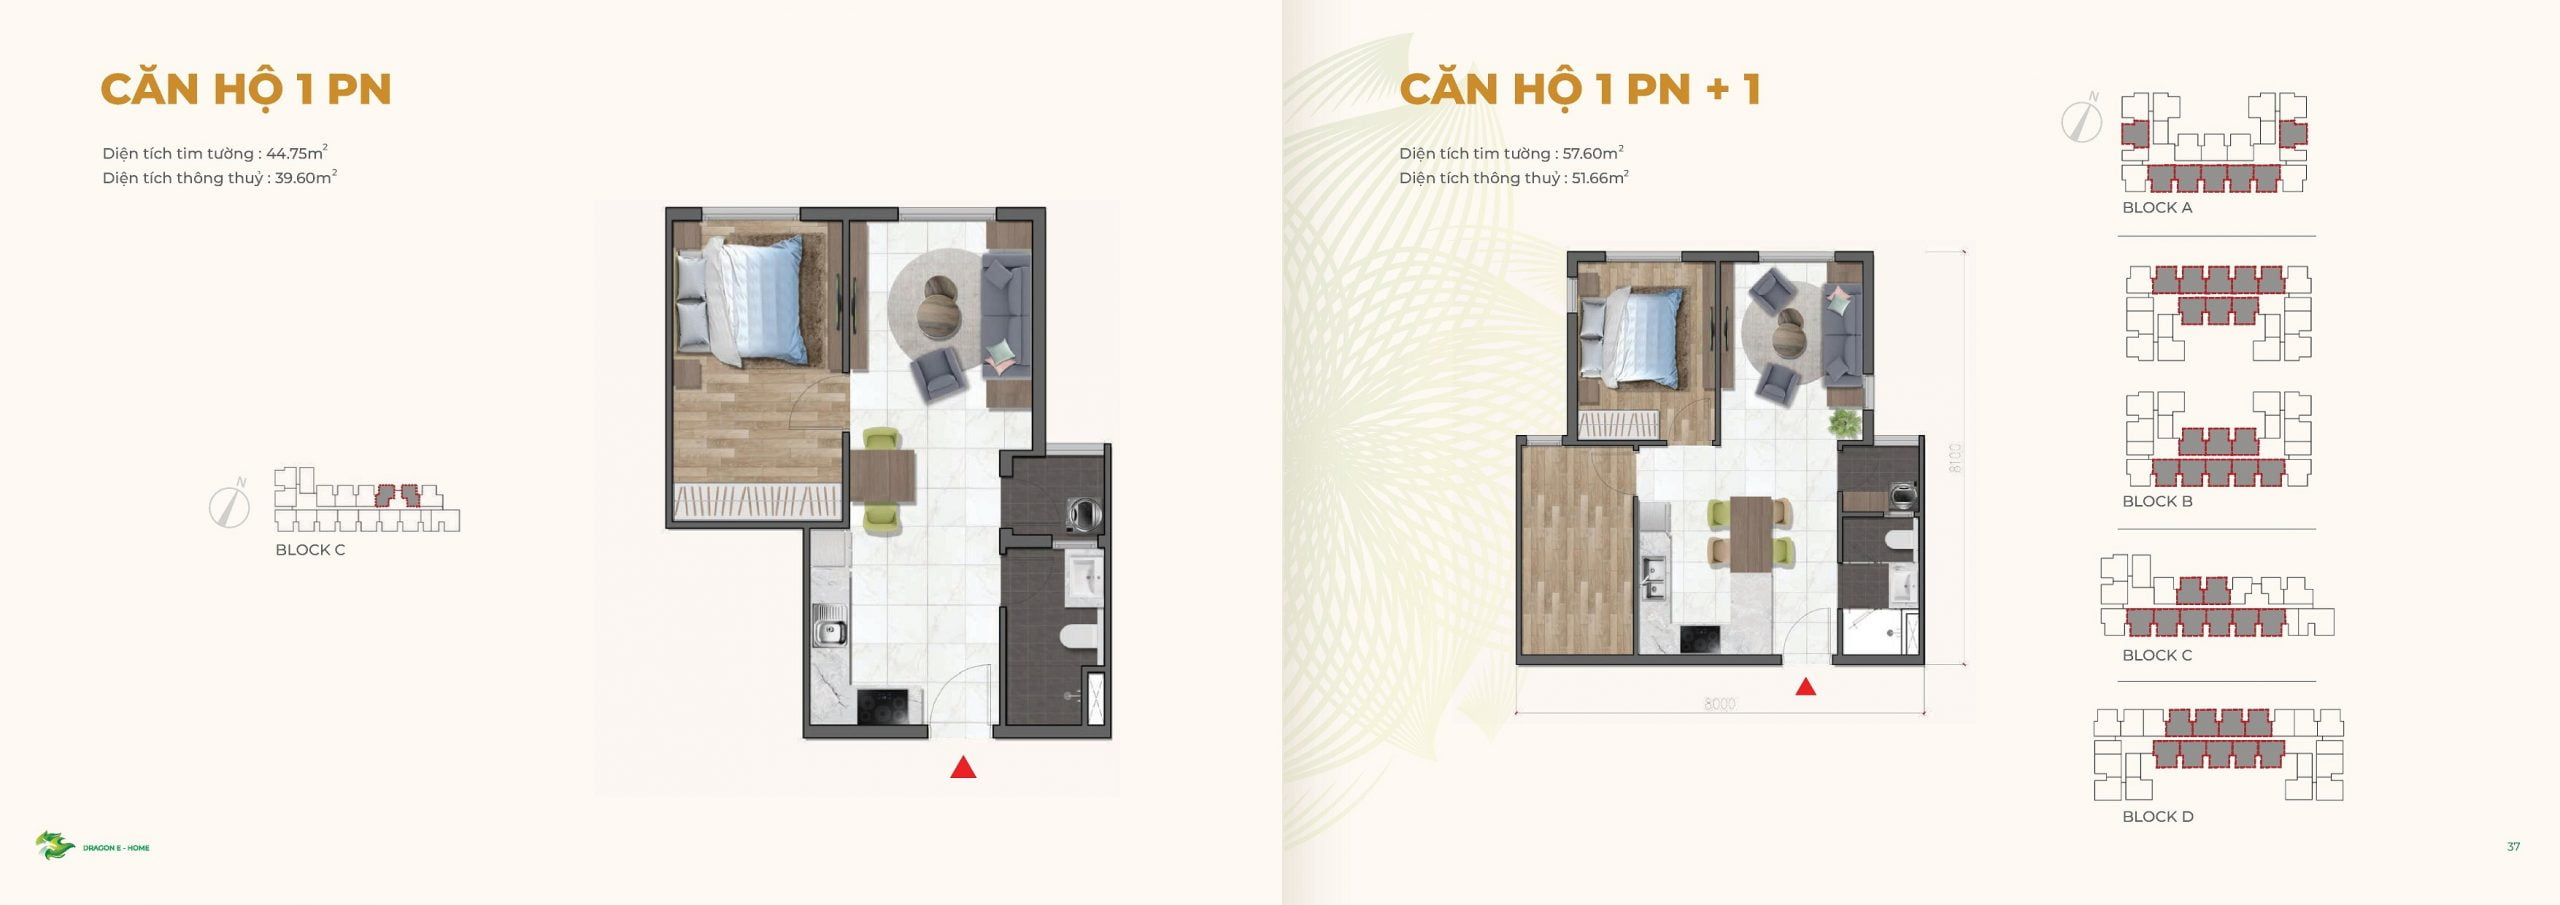 can ho 1PN +1 Dragon Ehome